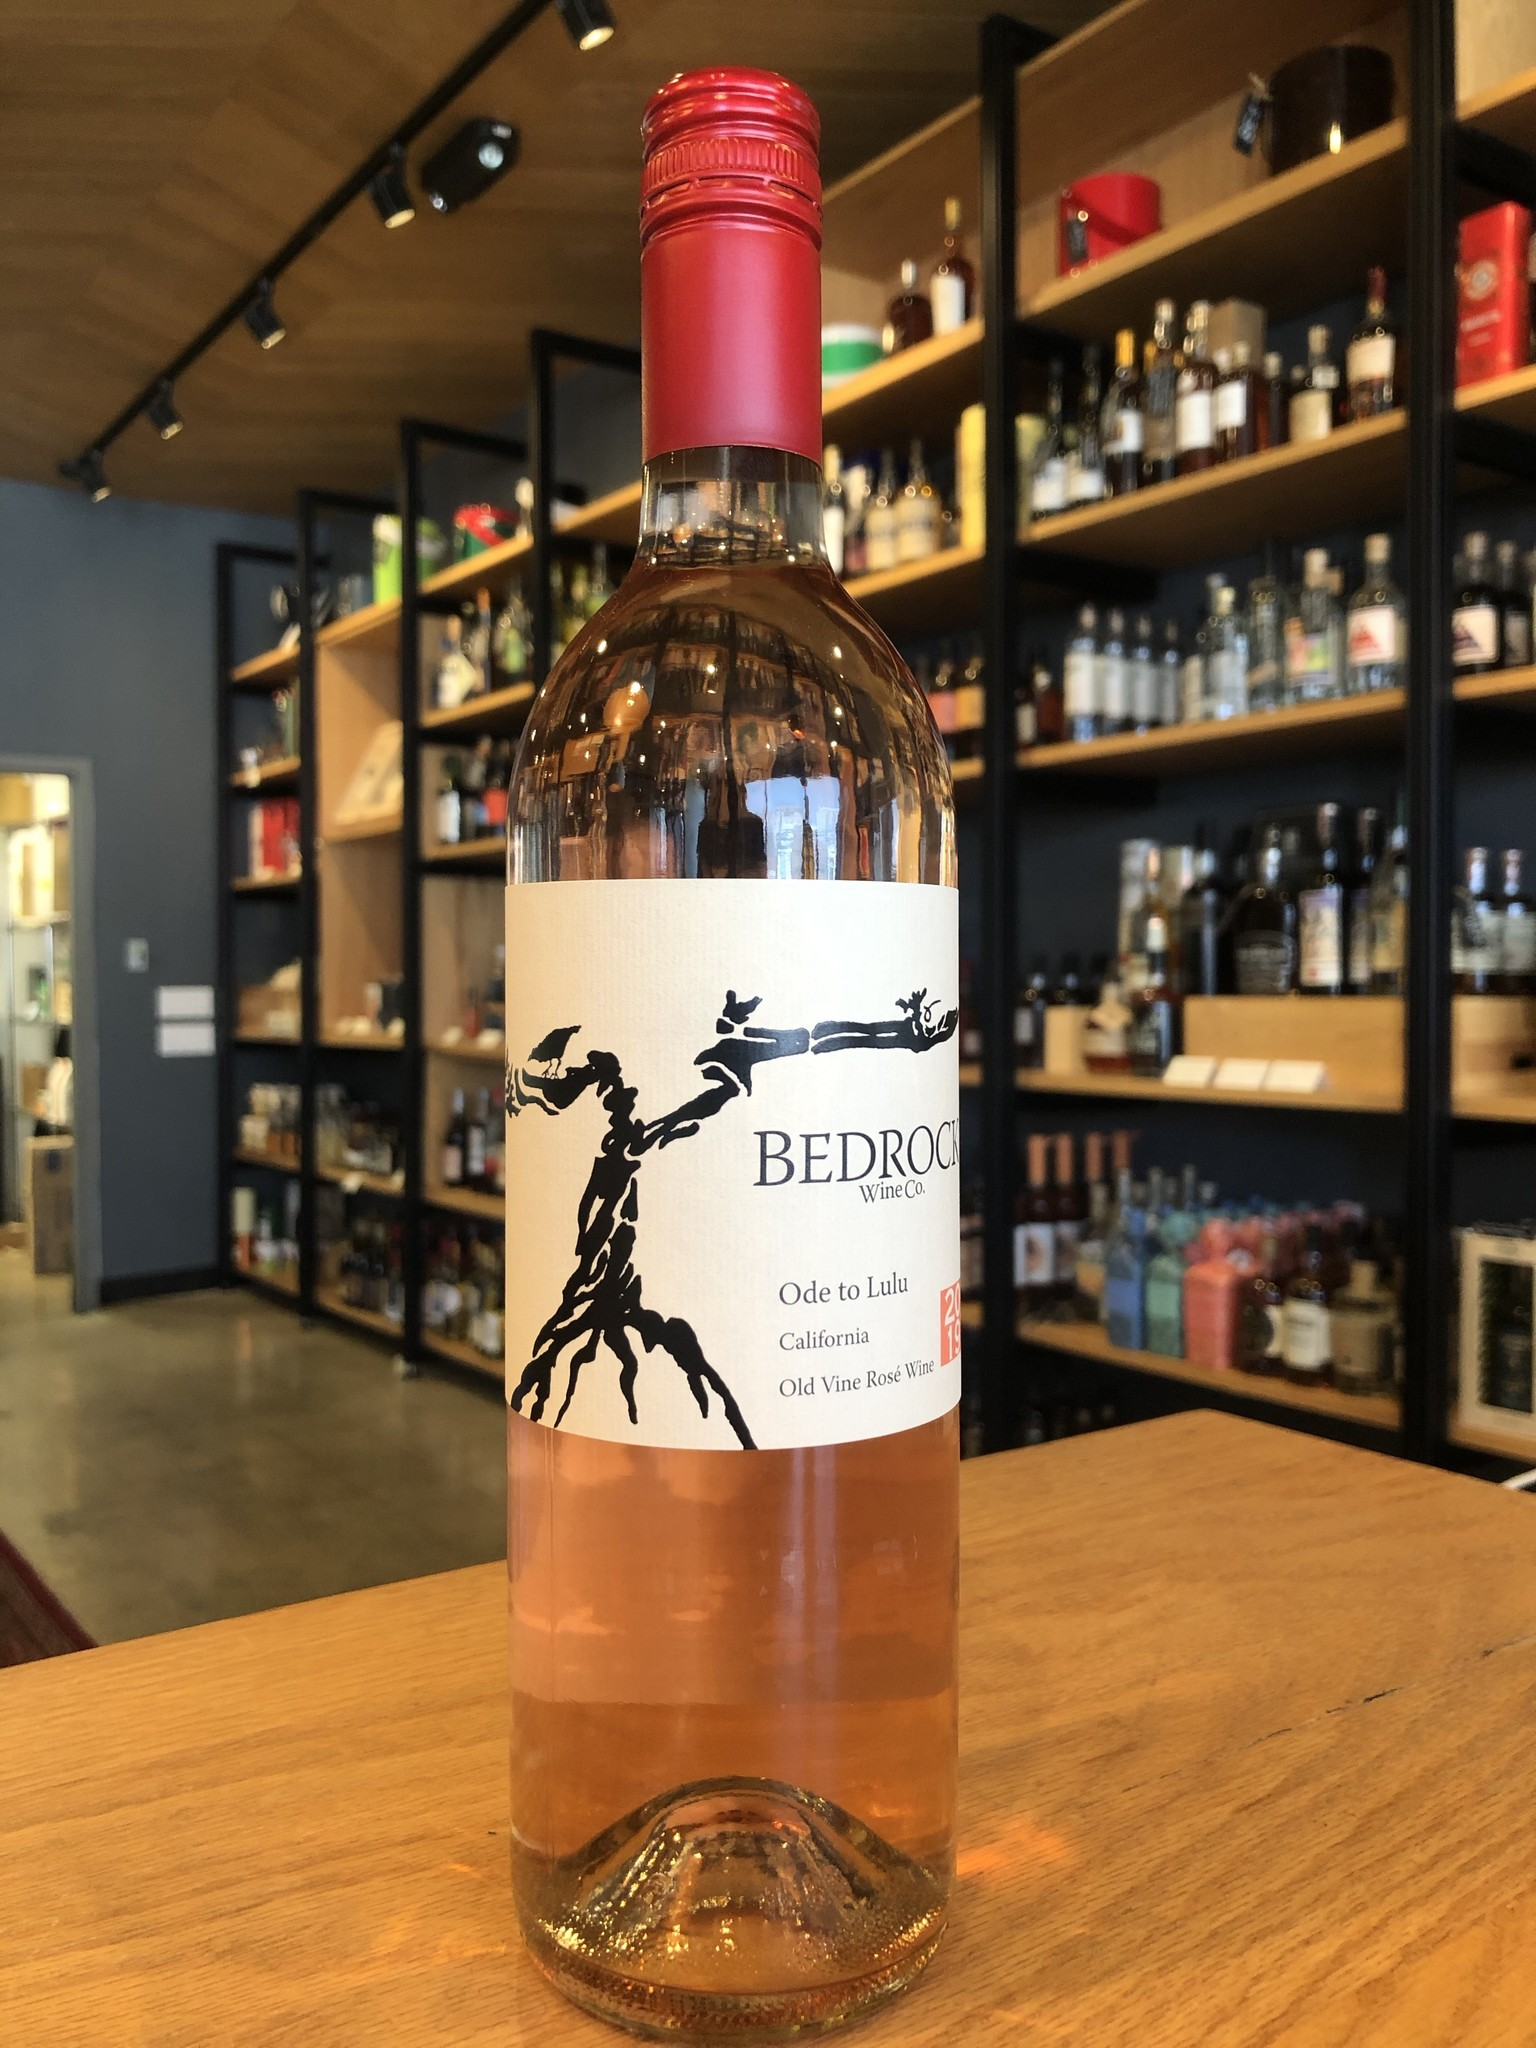 Bedrock 2019 Bedrock Wine Co. 'Ode to Lulu' Rosé 750ml